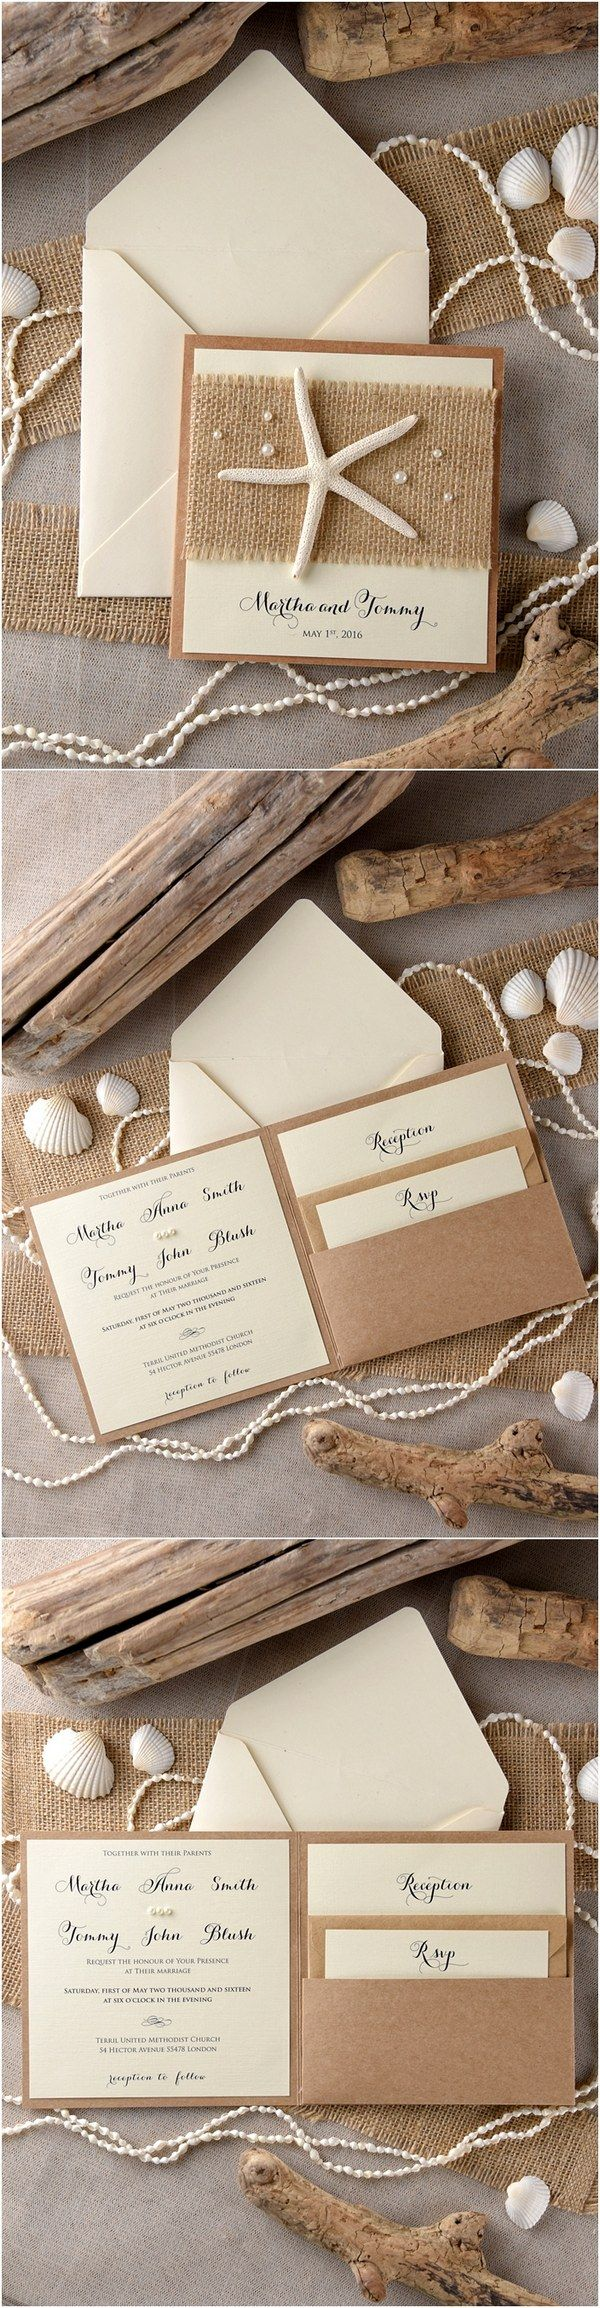 Rustic Country Burlap Wedding Invitations 4lovepolkadots Jeff